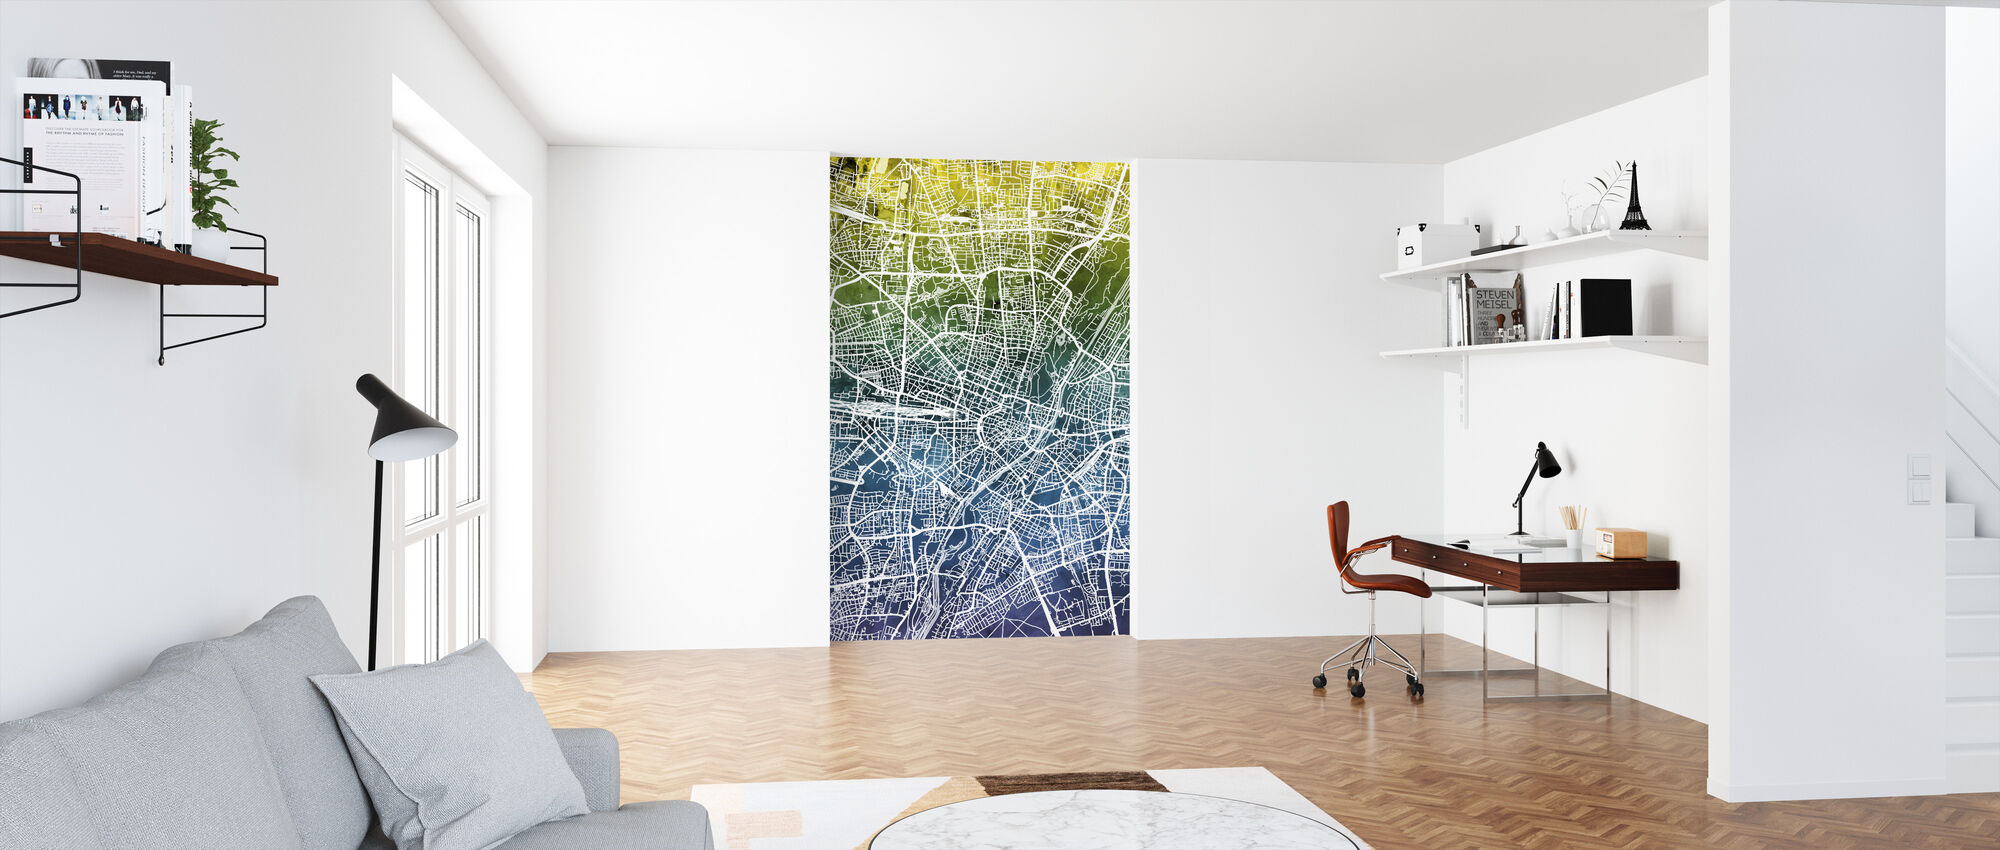 Munich Germany City Map - Wallpaper - Office